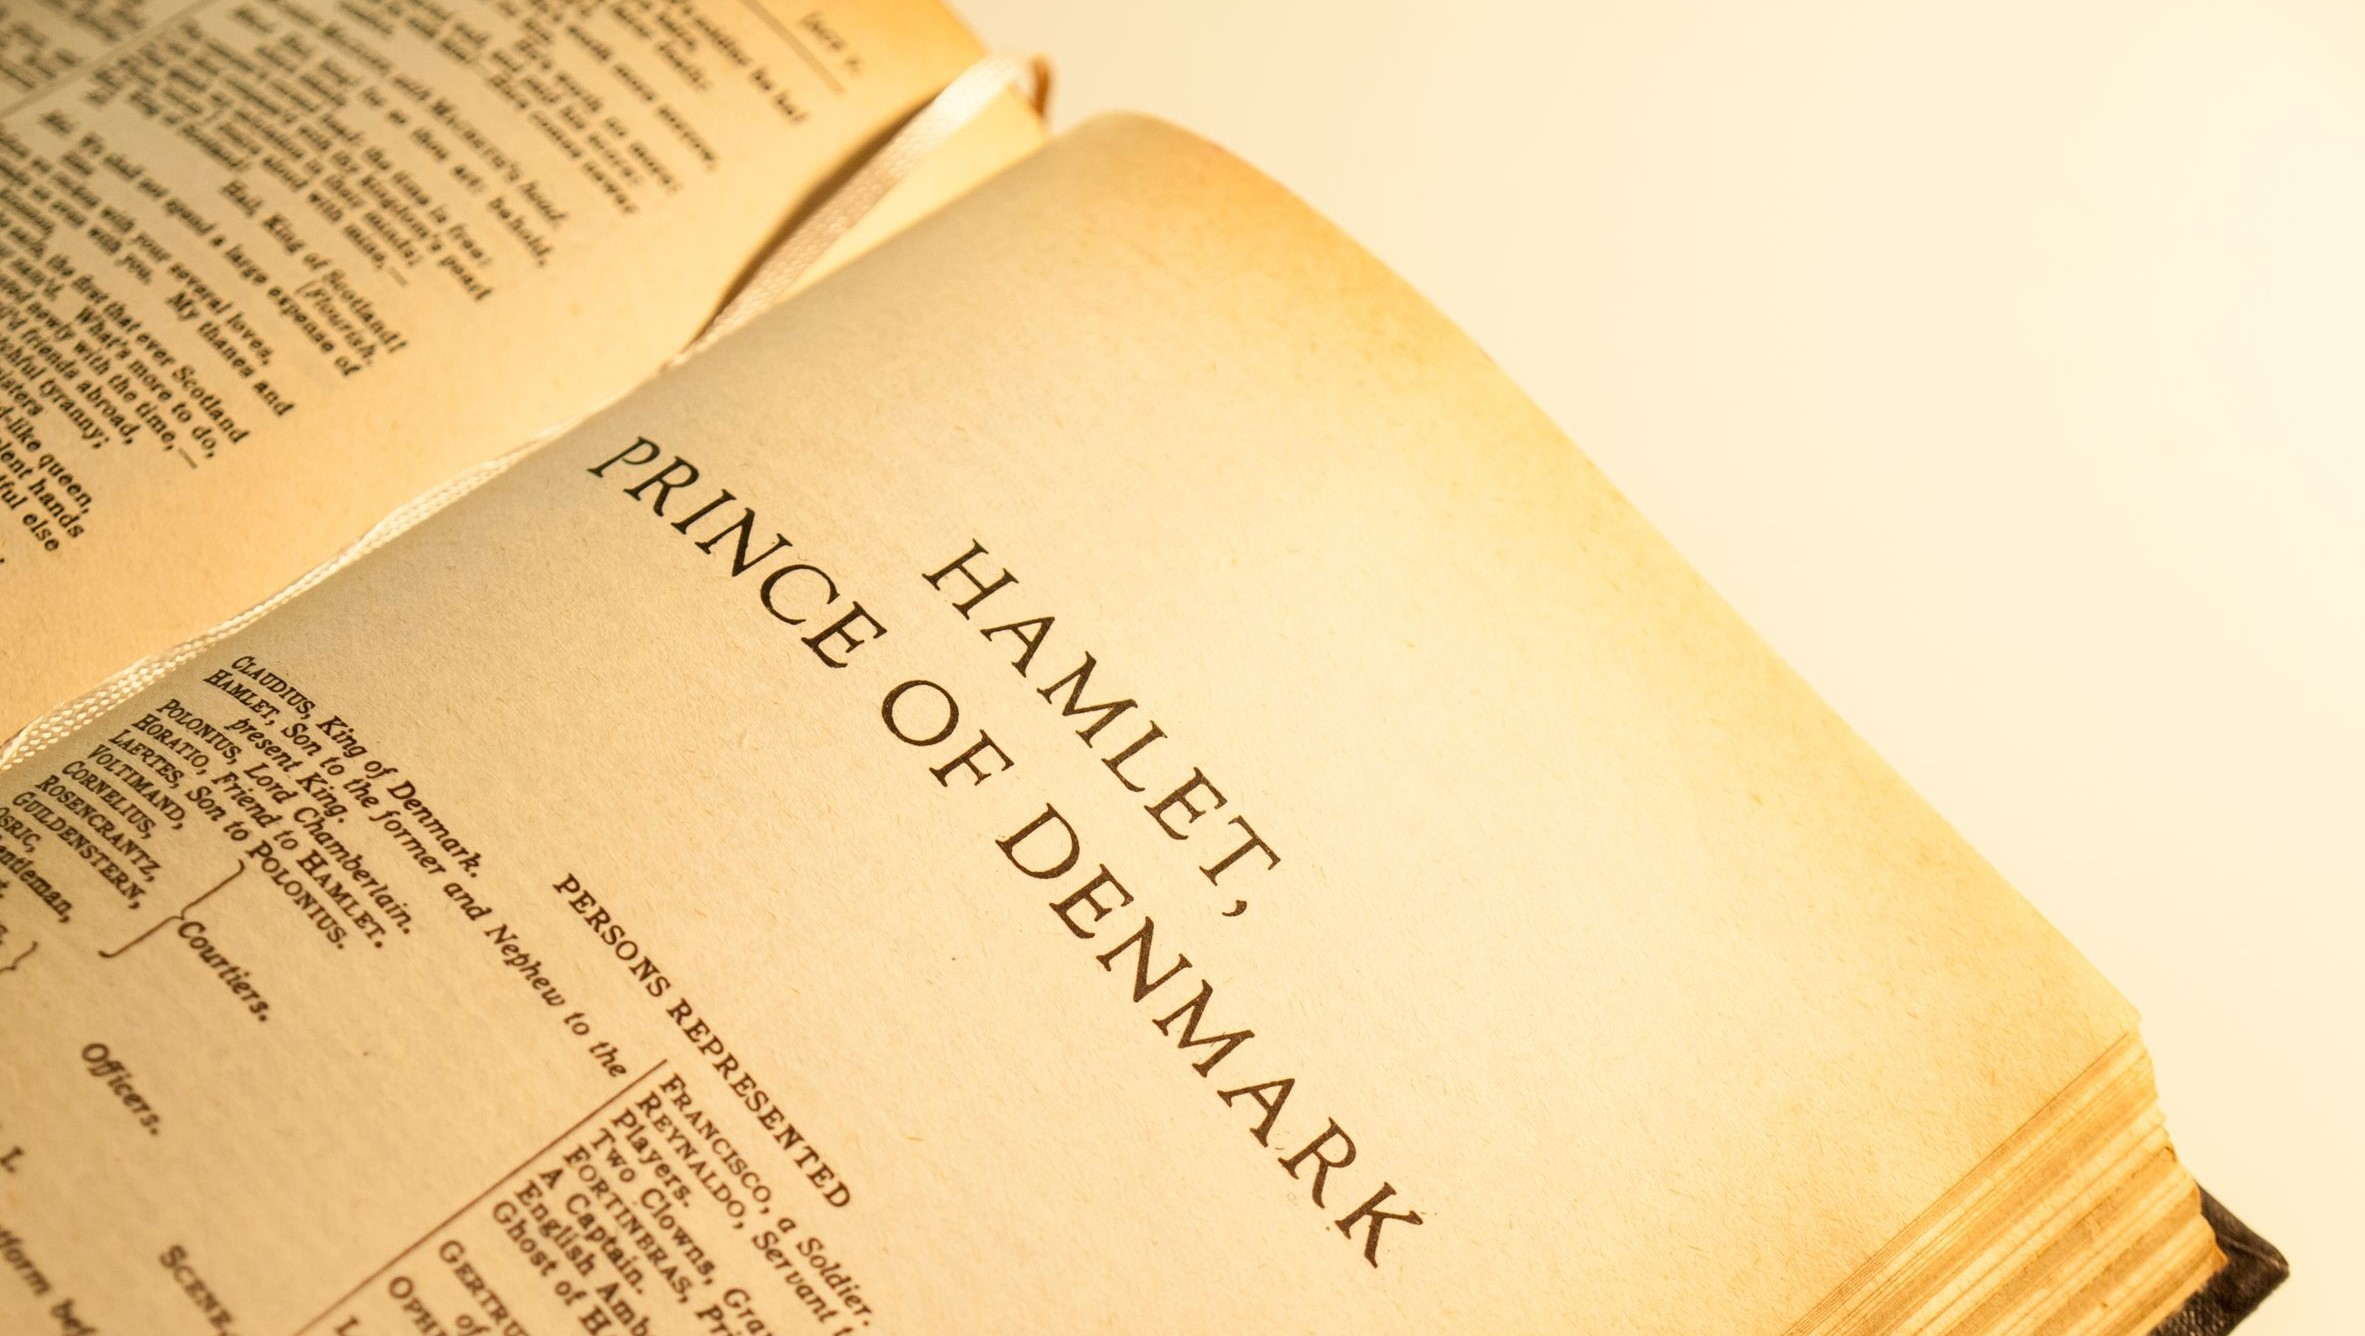 hamlet by william shakespeare essay Read this english essay and over 88,000 other research documents hamlet by william shakespeare many theories and questions arise as one reads hamlet by william shakespeare some are more obvious than others, but all.